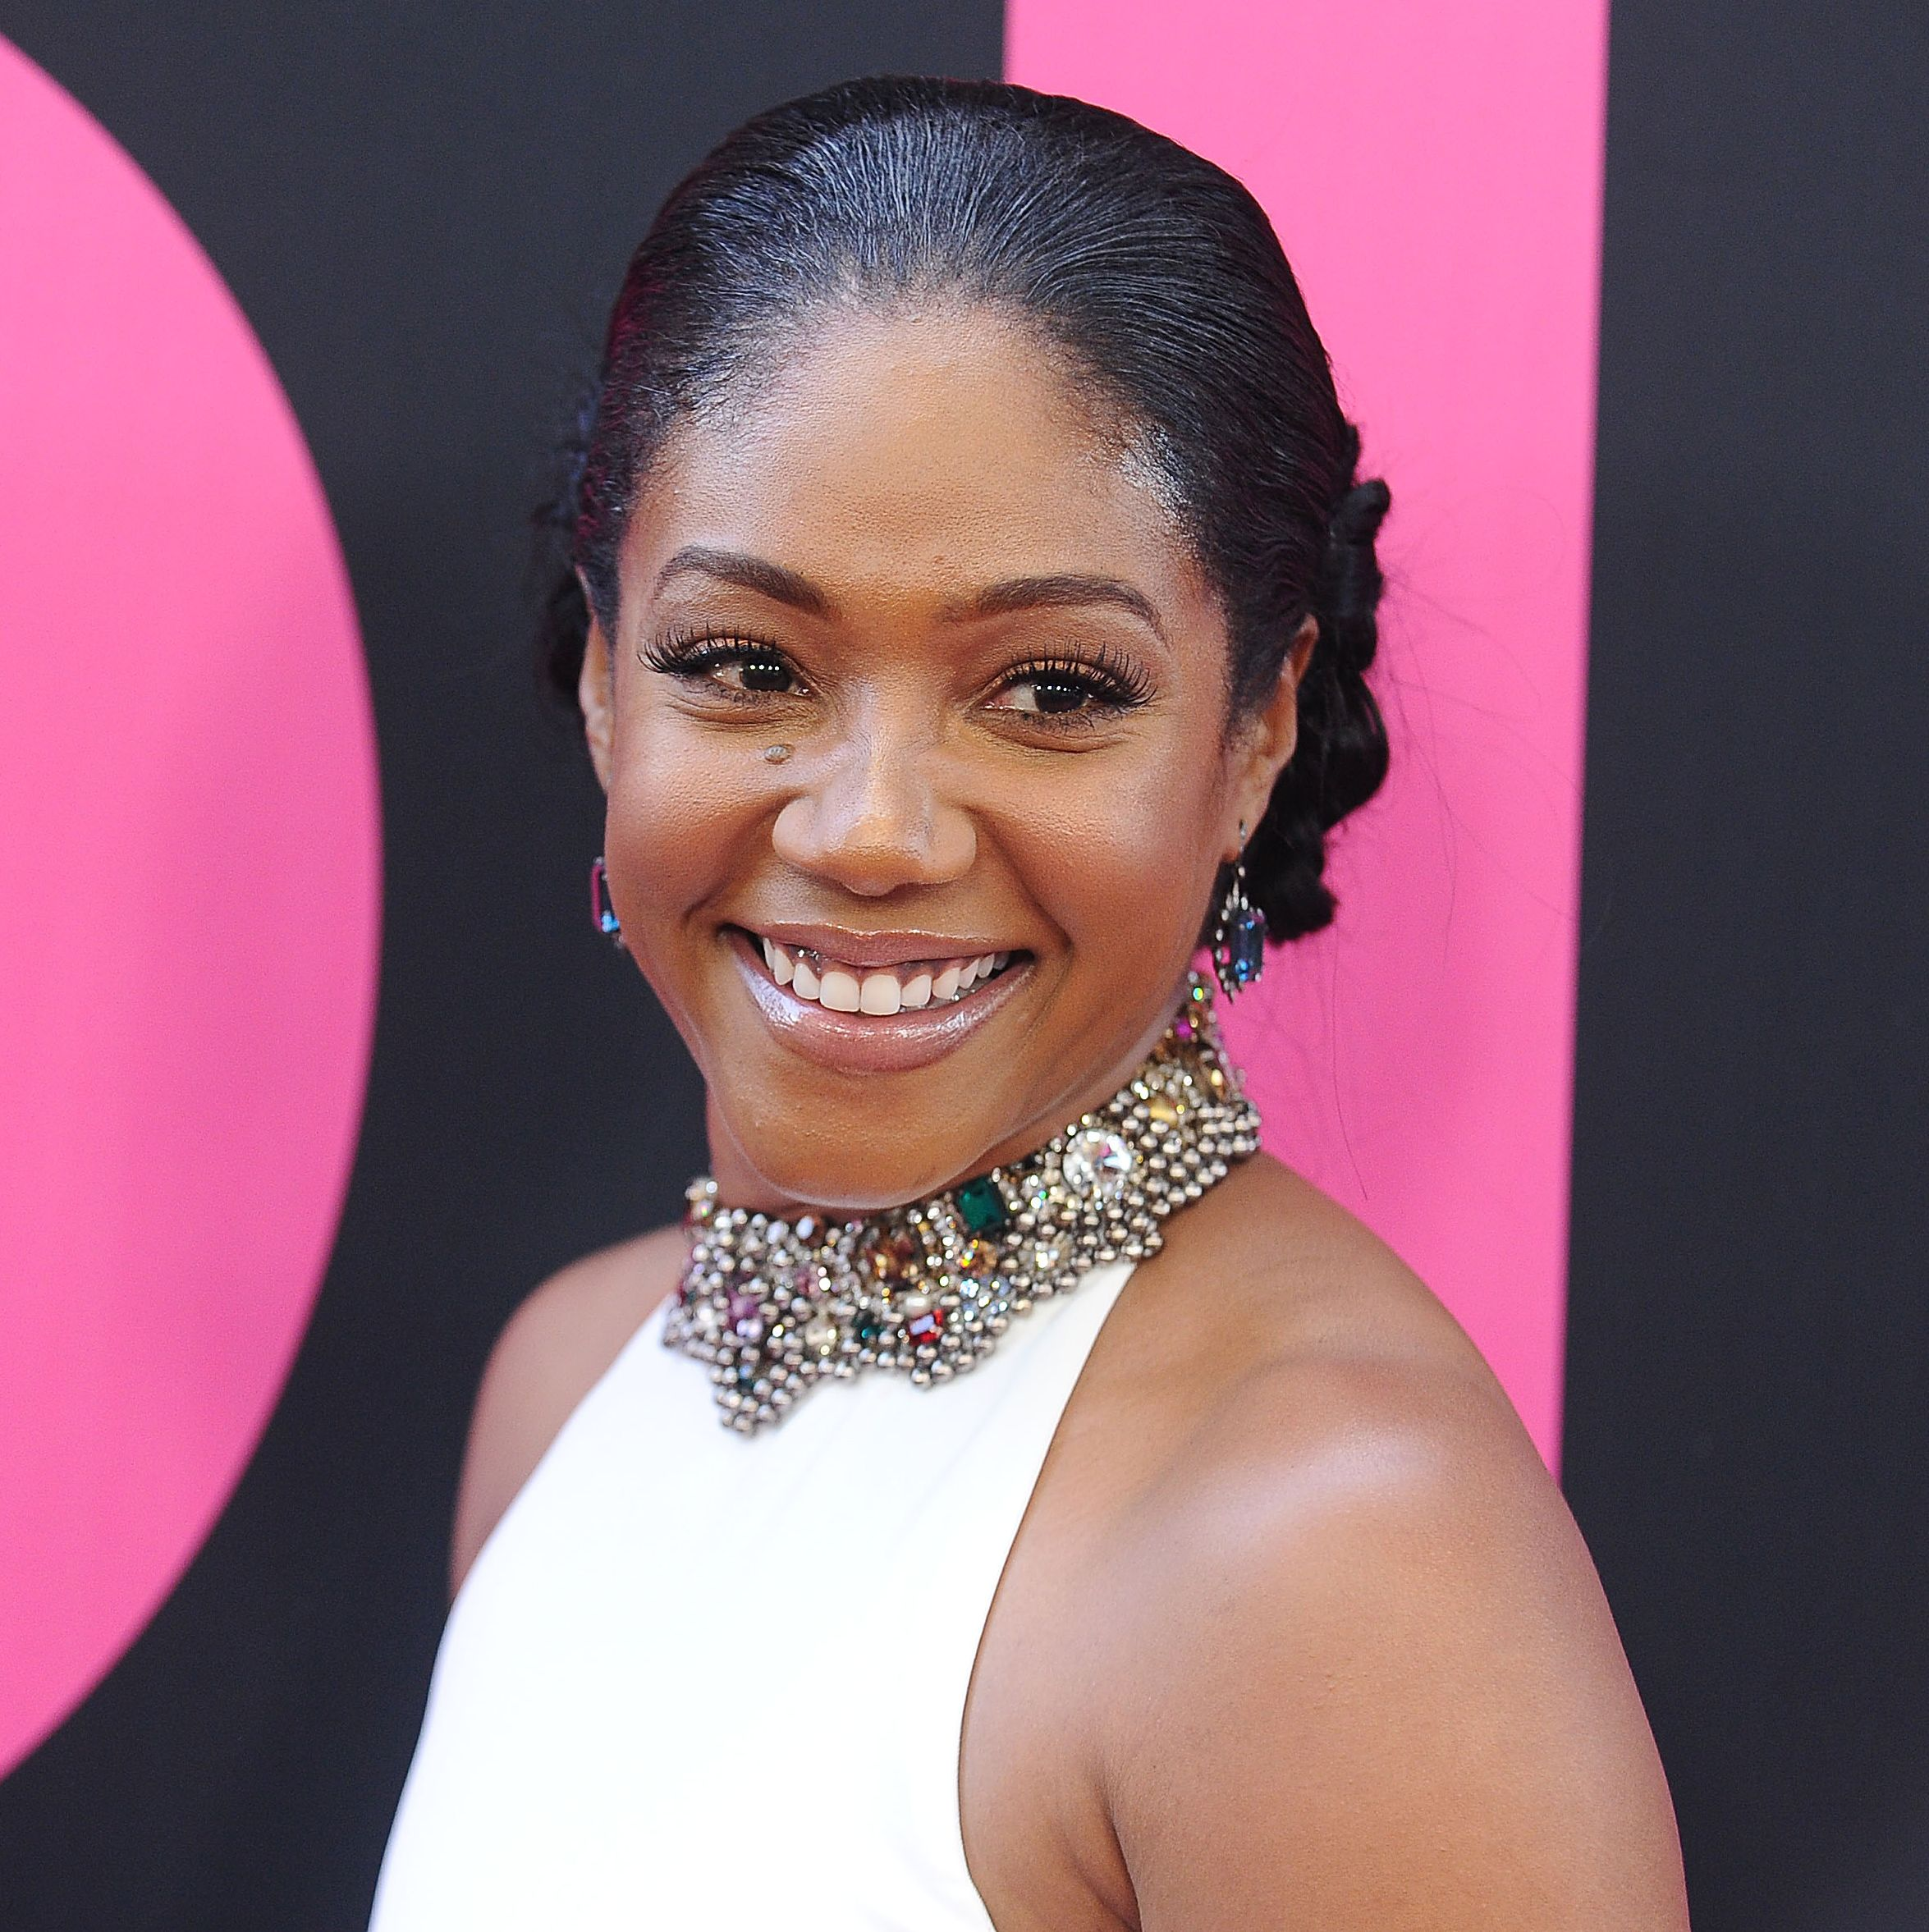 Tiffany Haddish Has Officially Worn This $4,000 Alexander McQueen Dress Five Times